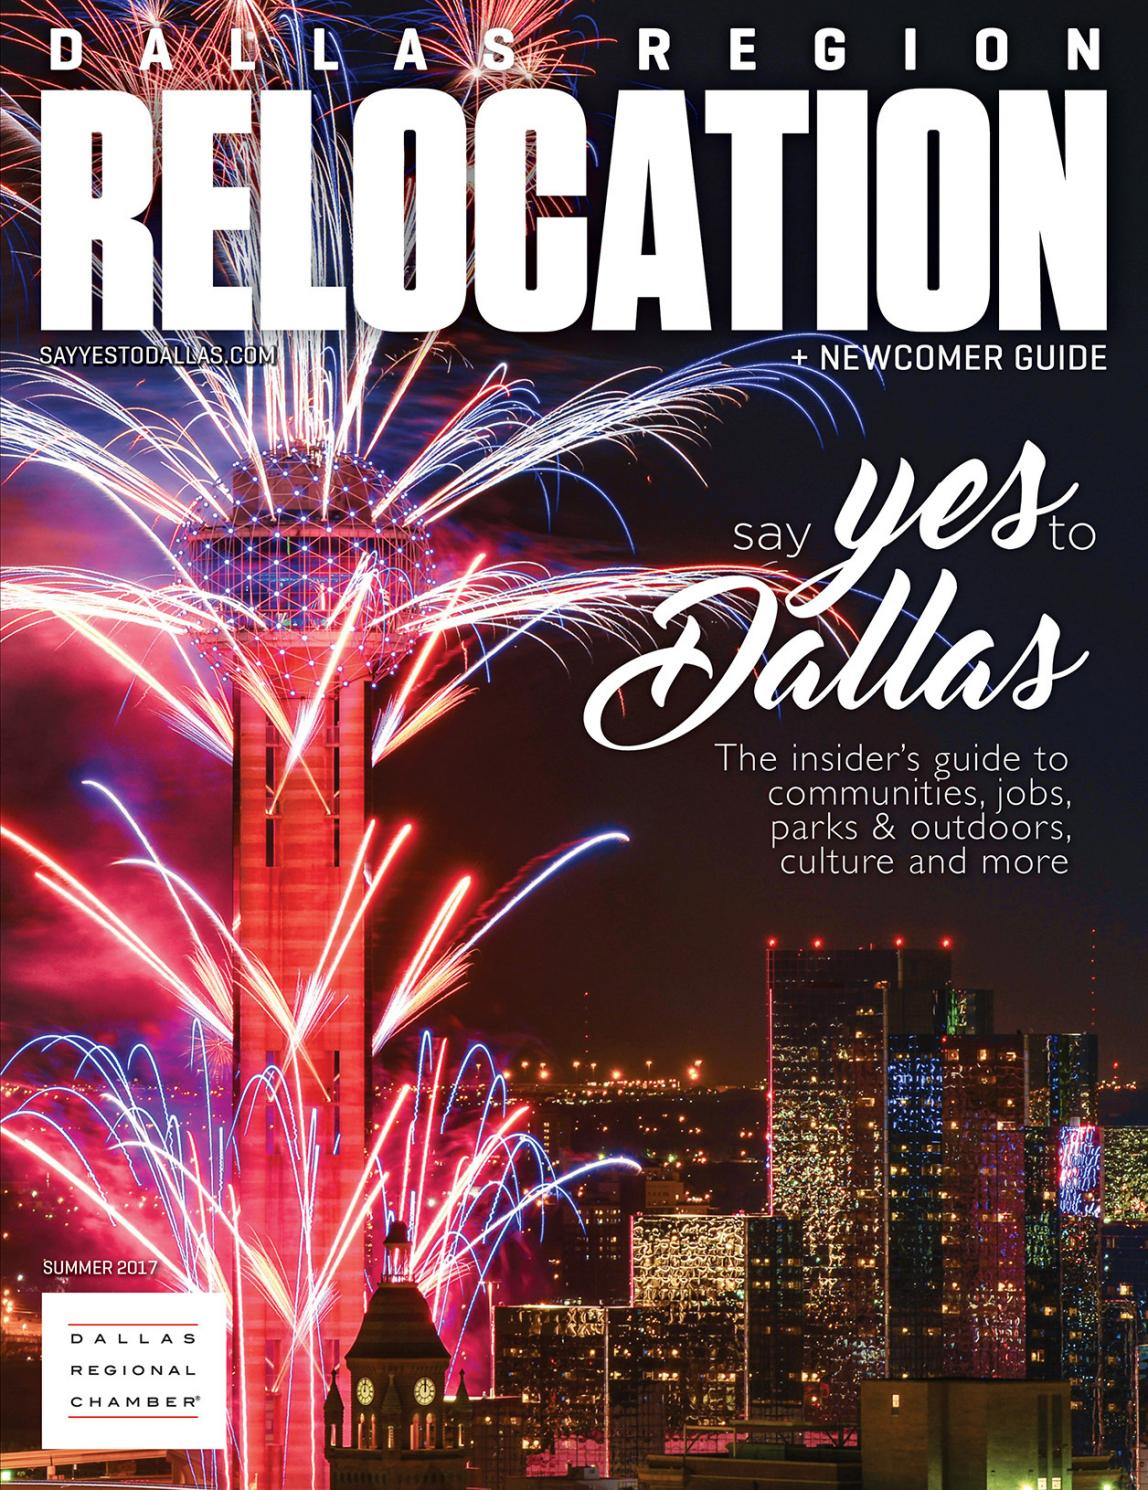 Dallas region relocation newcomer guide by dallas regional chamber publications issuu